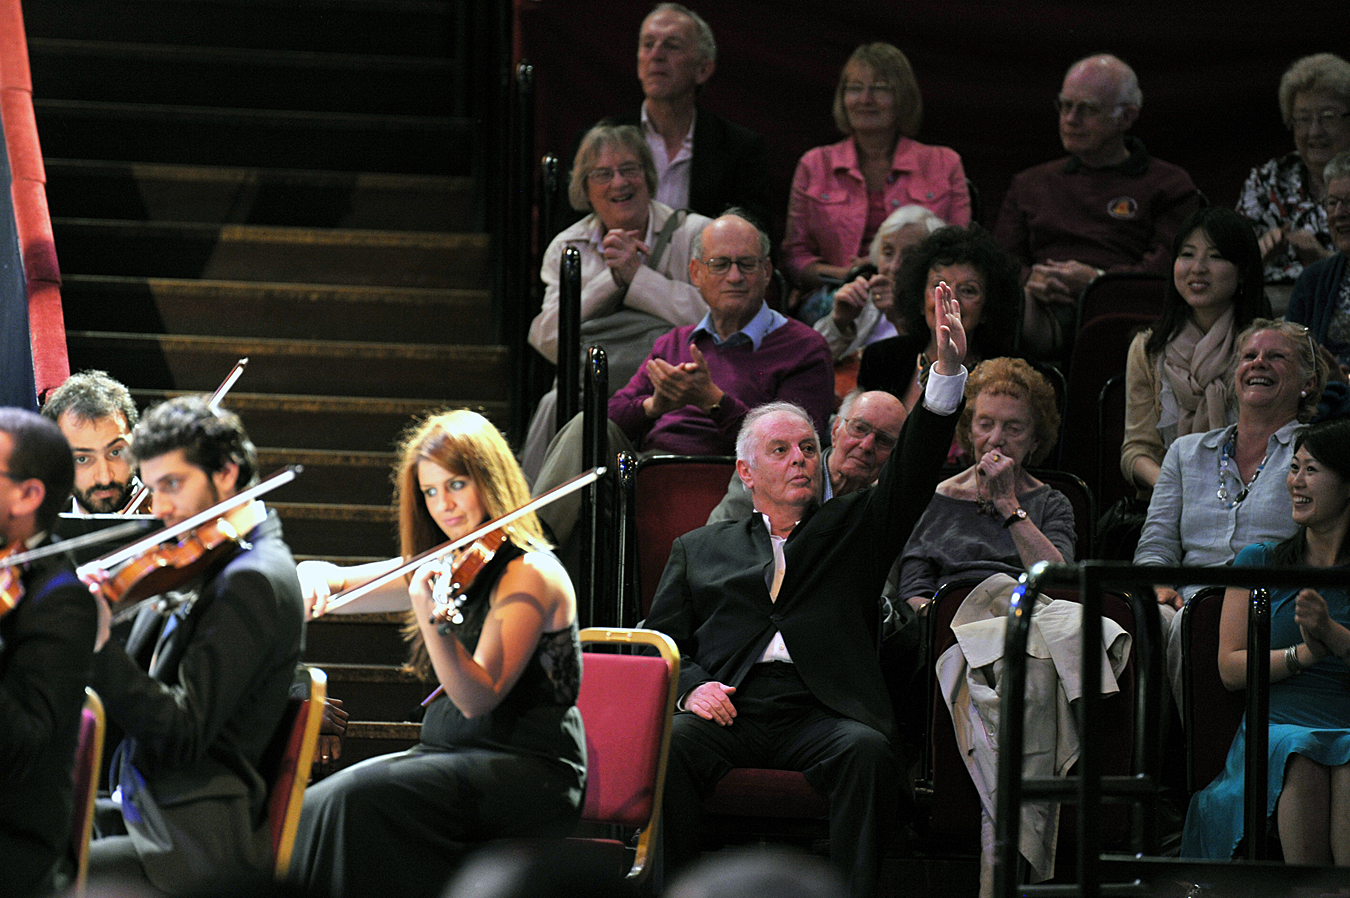 Barenboim sitting out a West-Eastern Divan Orchestra encore at the Proms